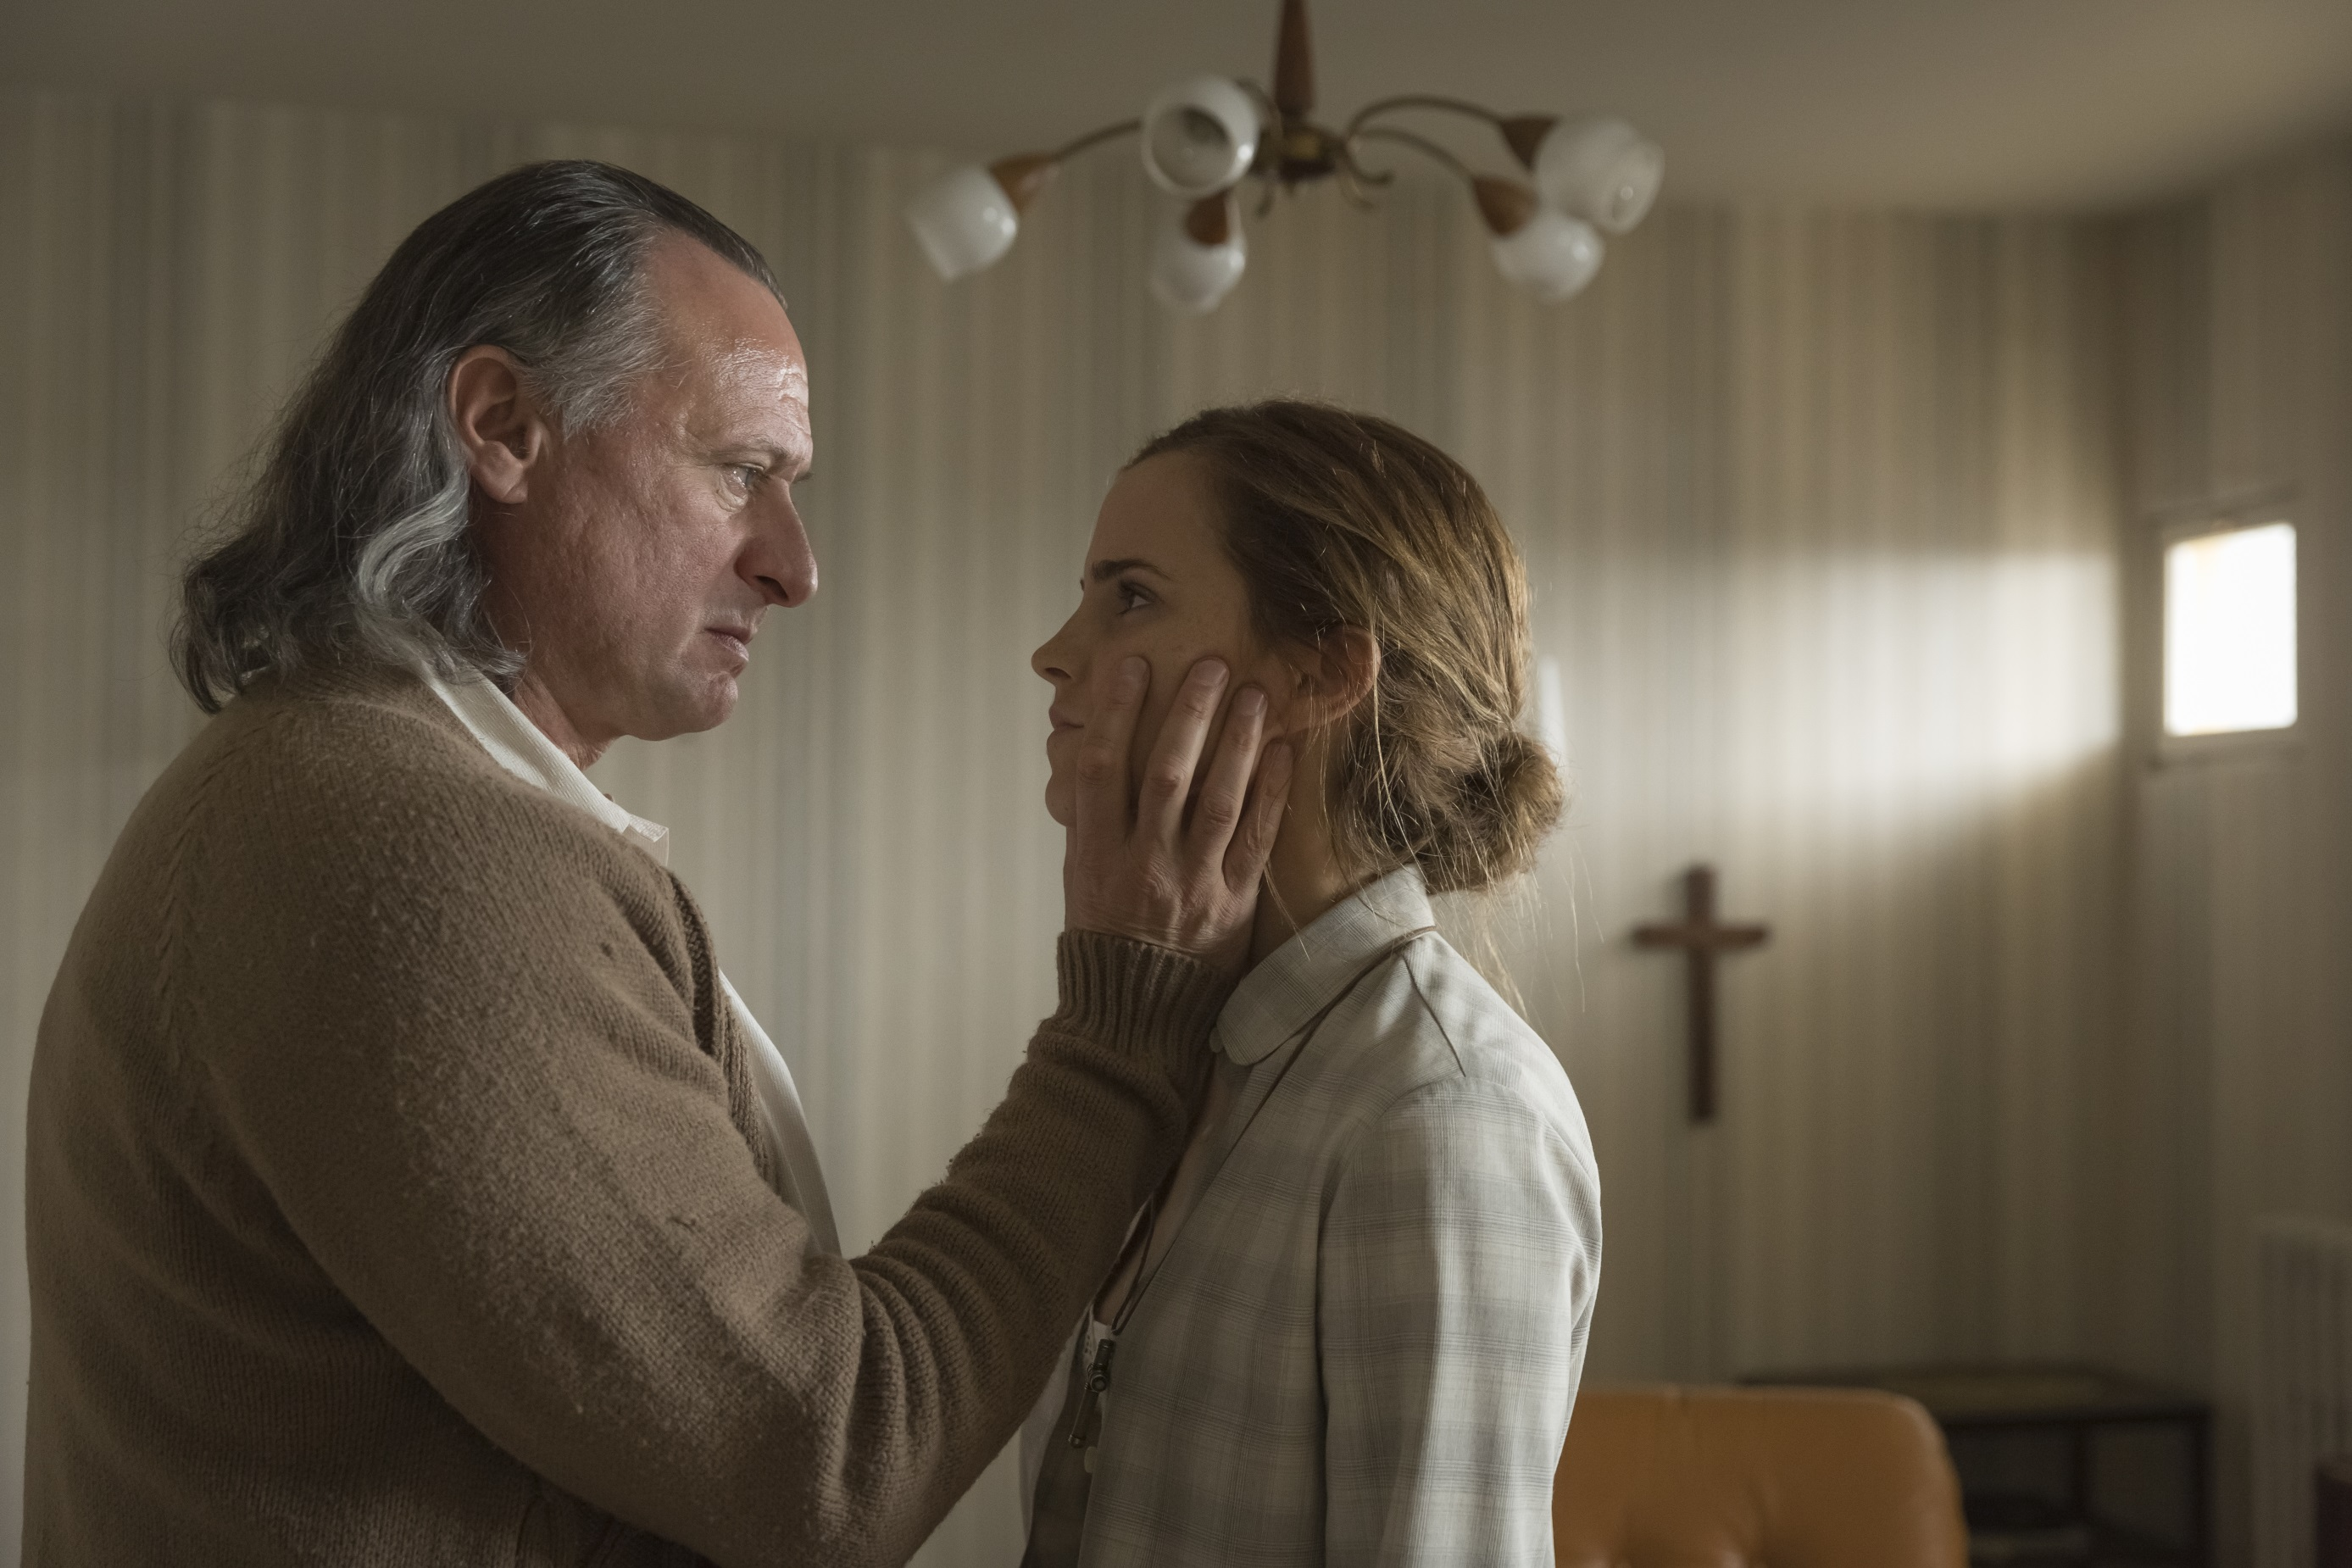 Emma Watson: First HQ picture of Emma Watson and Michael Nyqvist in